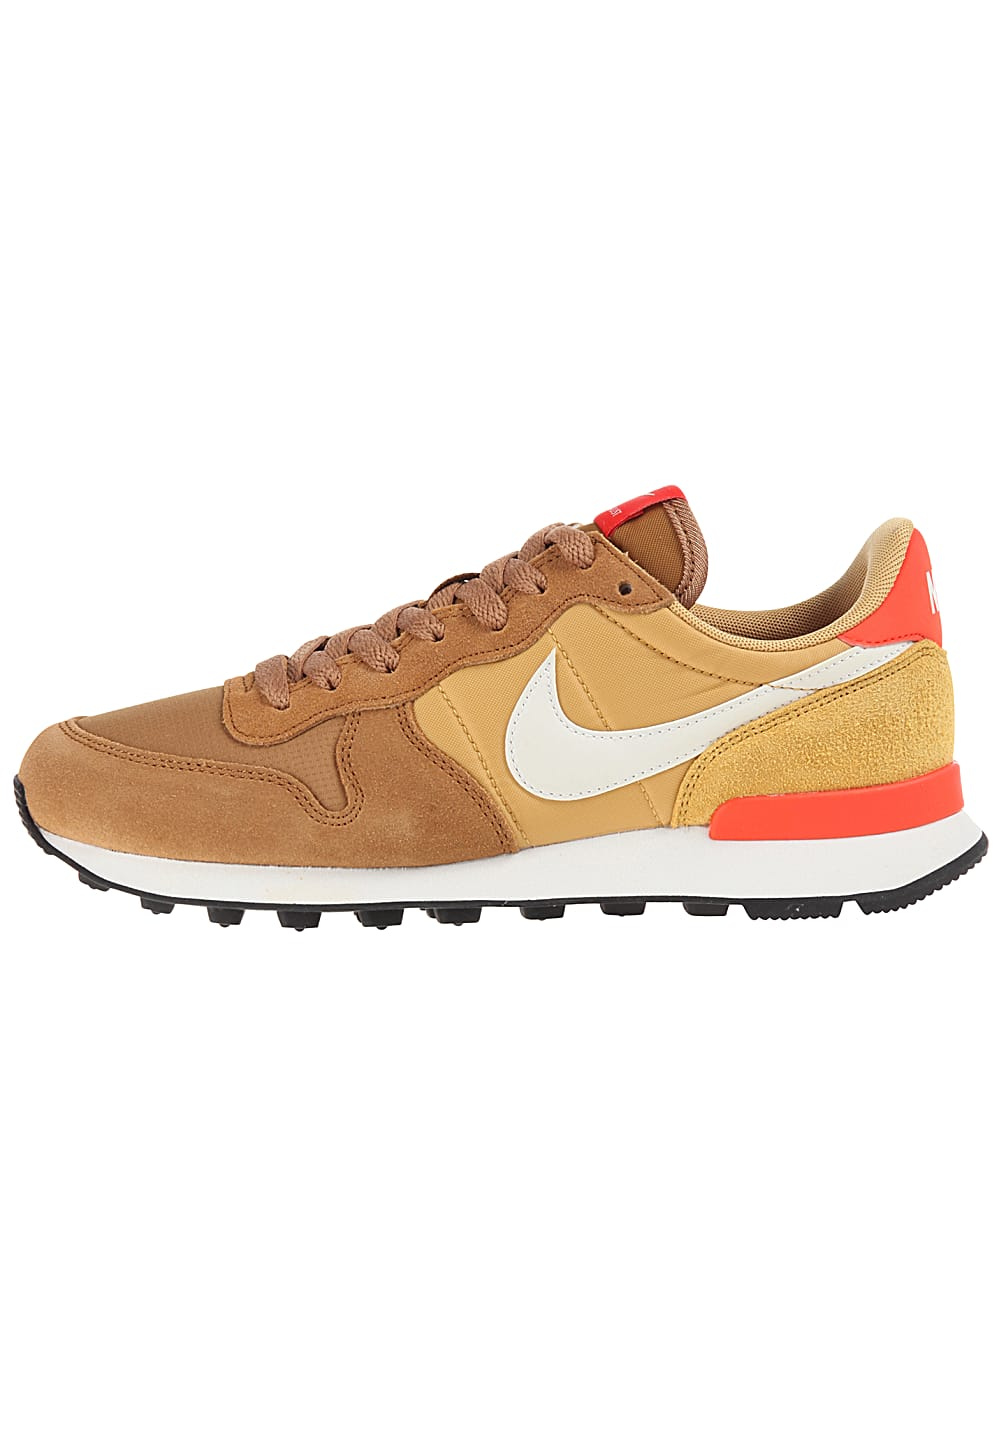 cheaper autumn shoes best prices NIKE SPORTSWEAR Internationalist - Sneaker für Damen - Braun